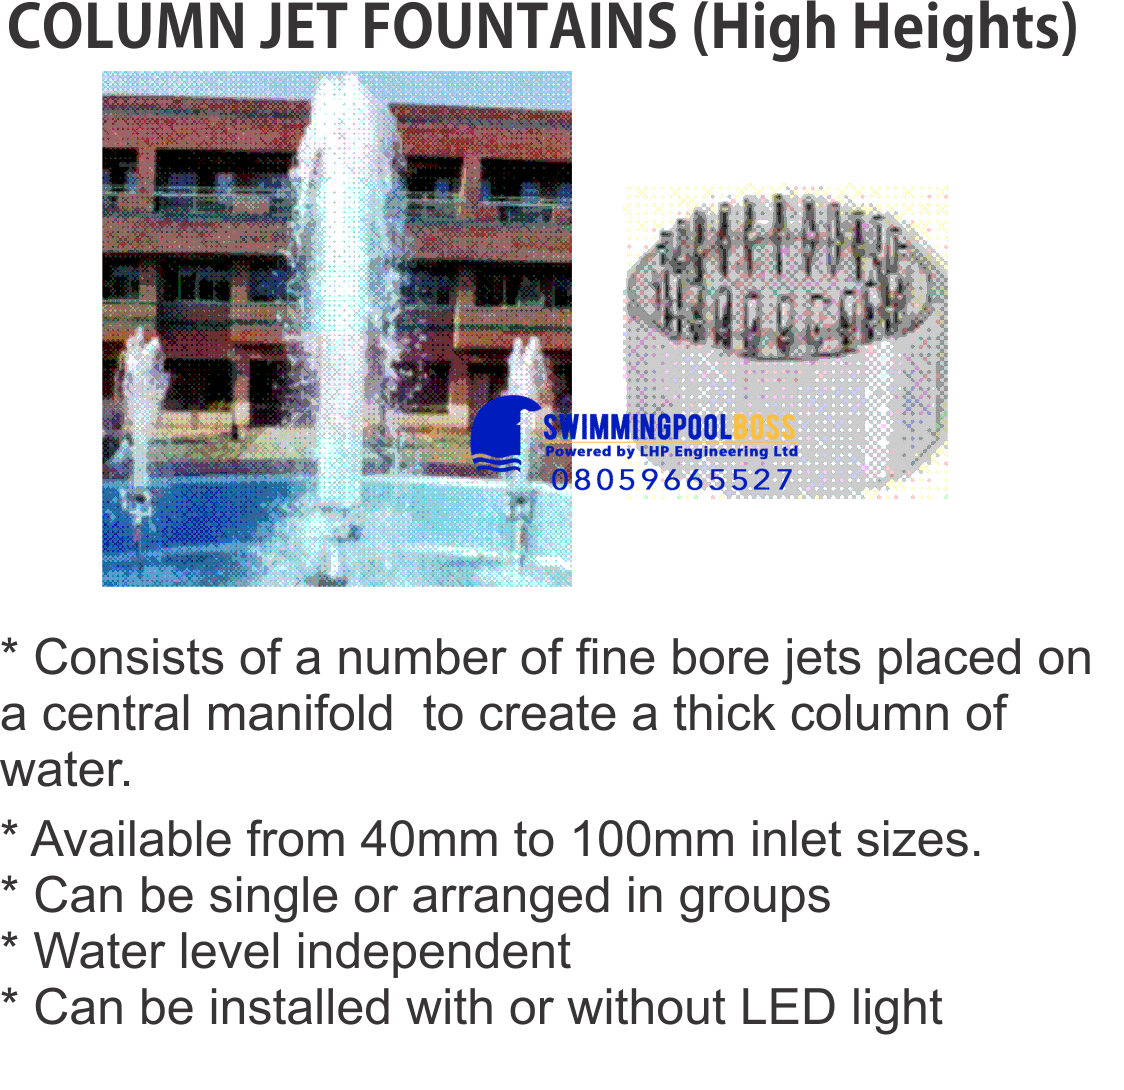 COLUMN JET FOUNTAINS